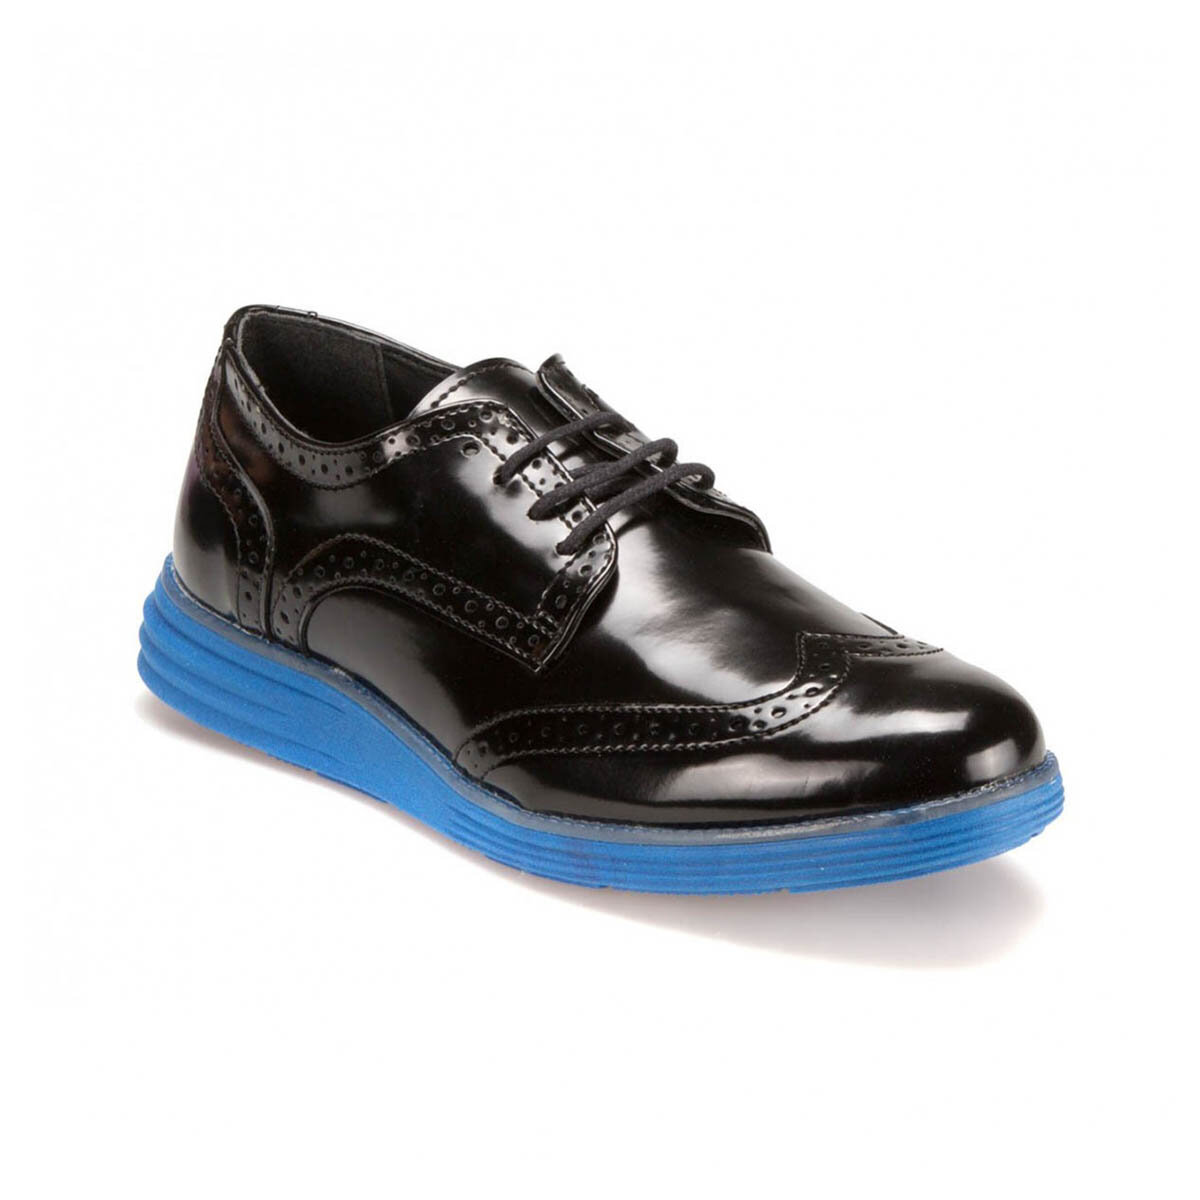 FLO 61123-1 M 6693 Black Men 'S Classic Shoes JJ-Stiller